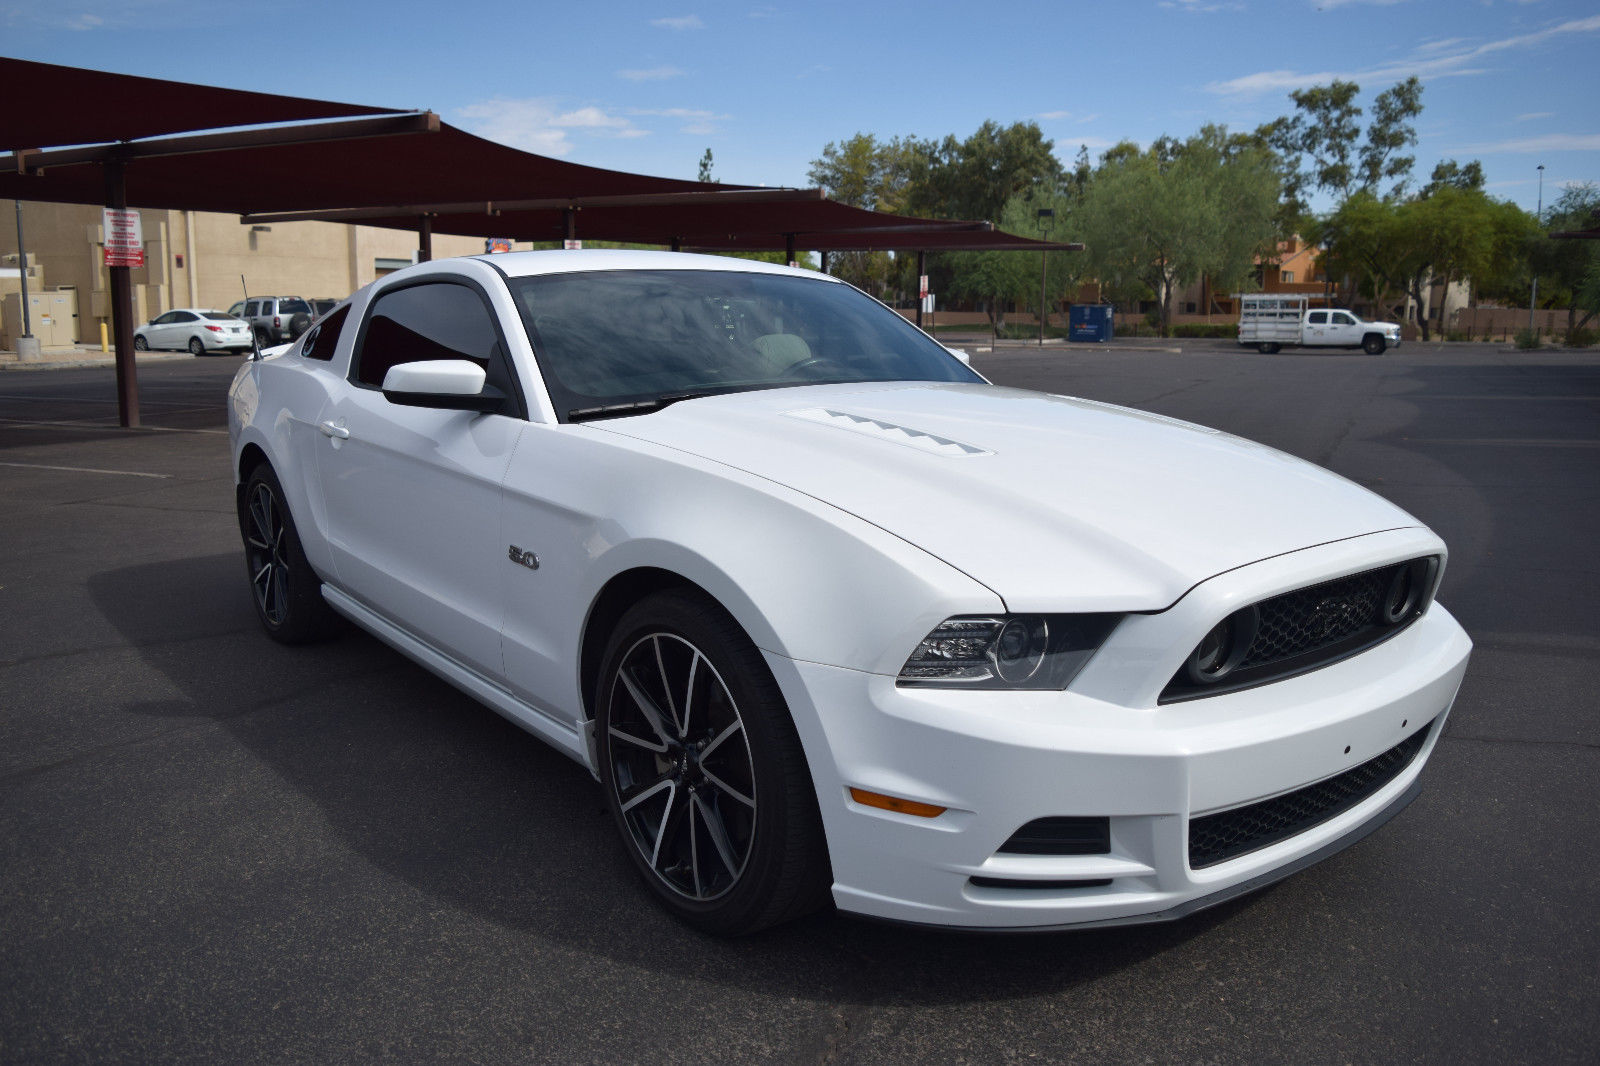 Great 2014 ford mustang gt 2014 ford mustang w 55500 miles in excellent condition 2018 2019